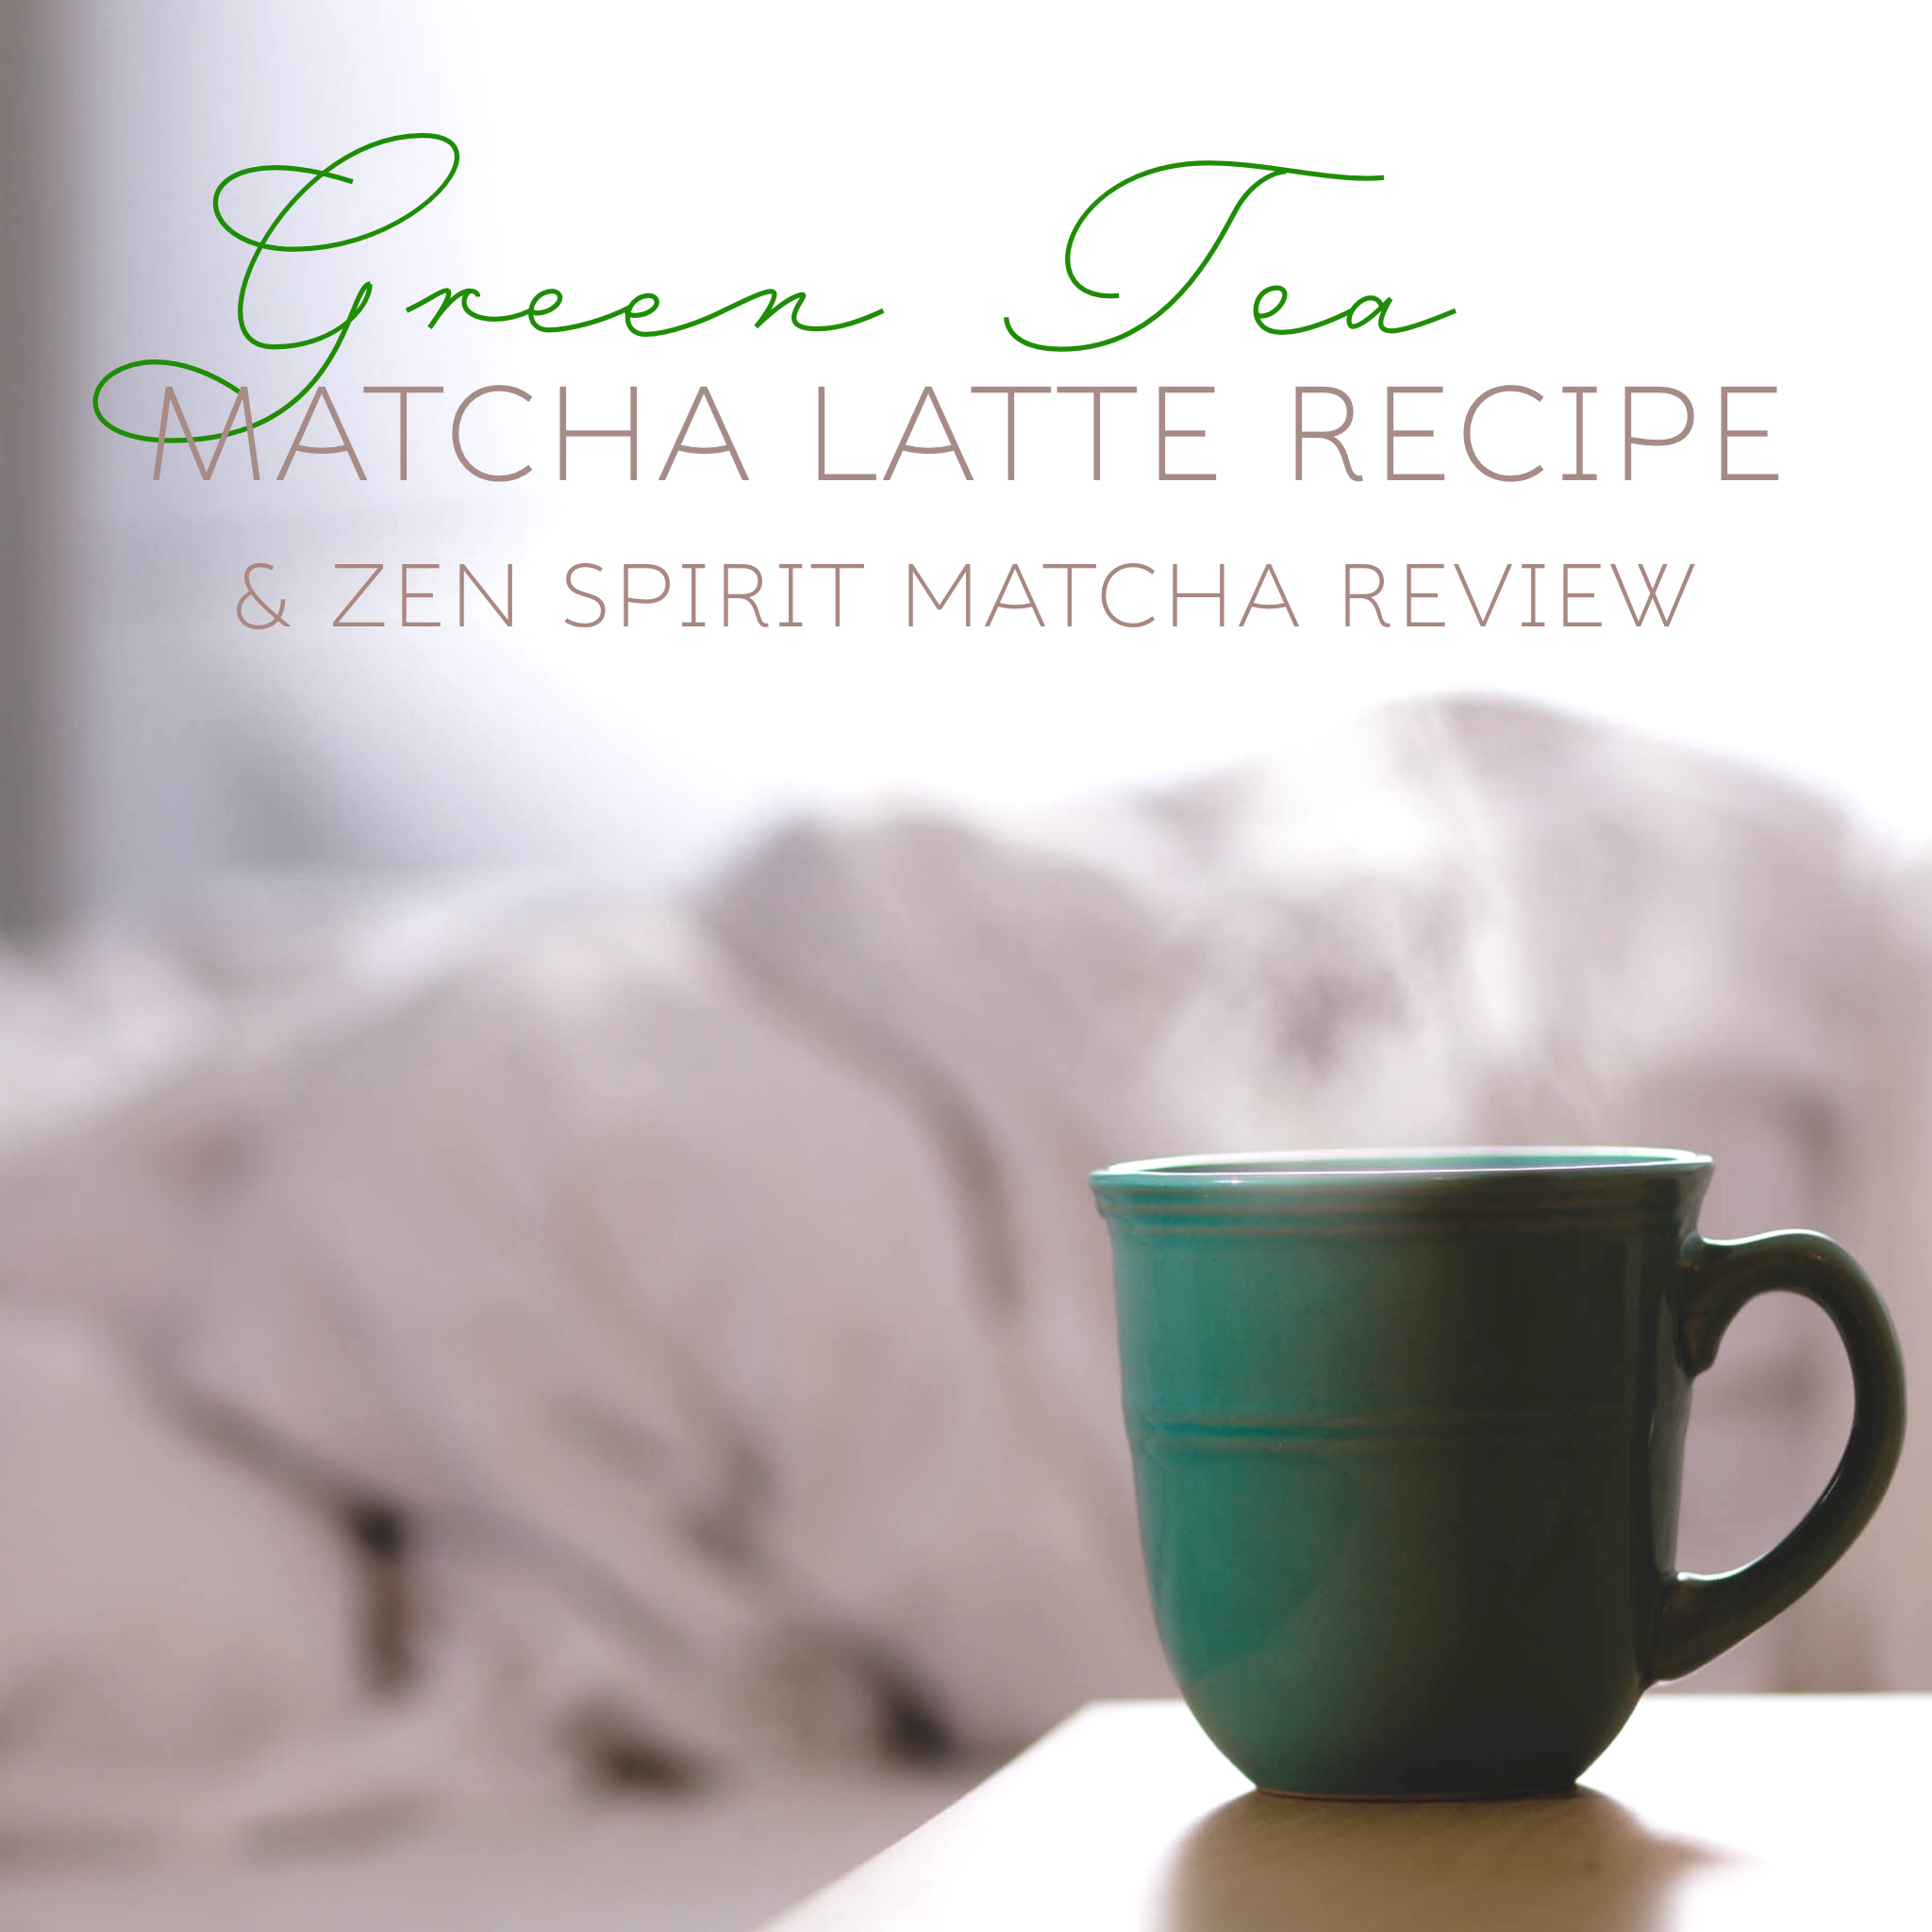 Vegan Matcha Latte Recipe And Zen Spirit Matcha Review